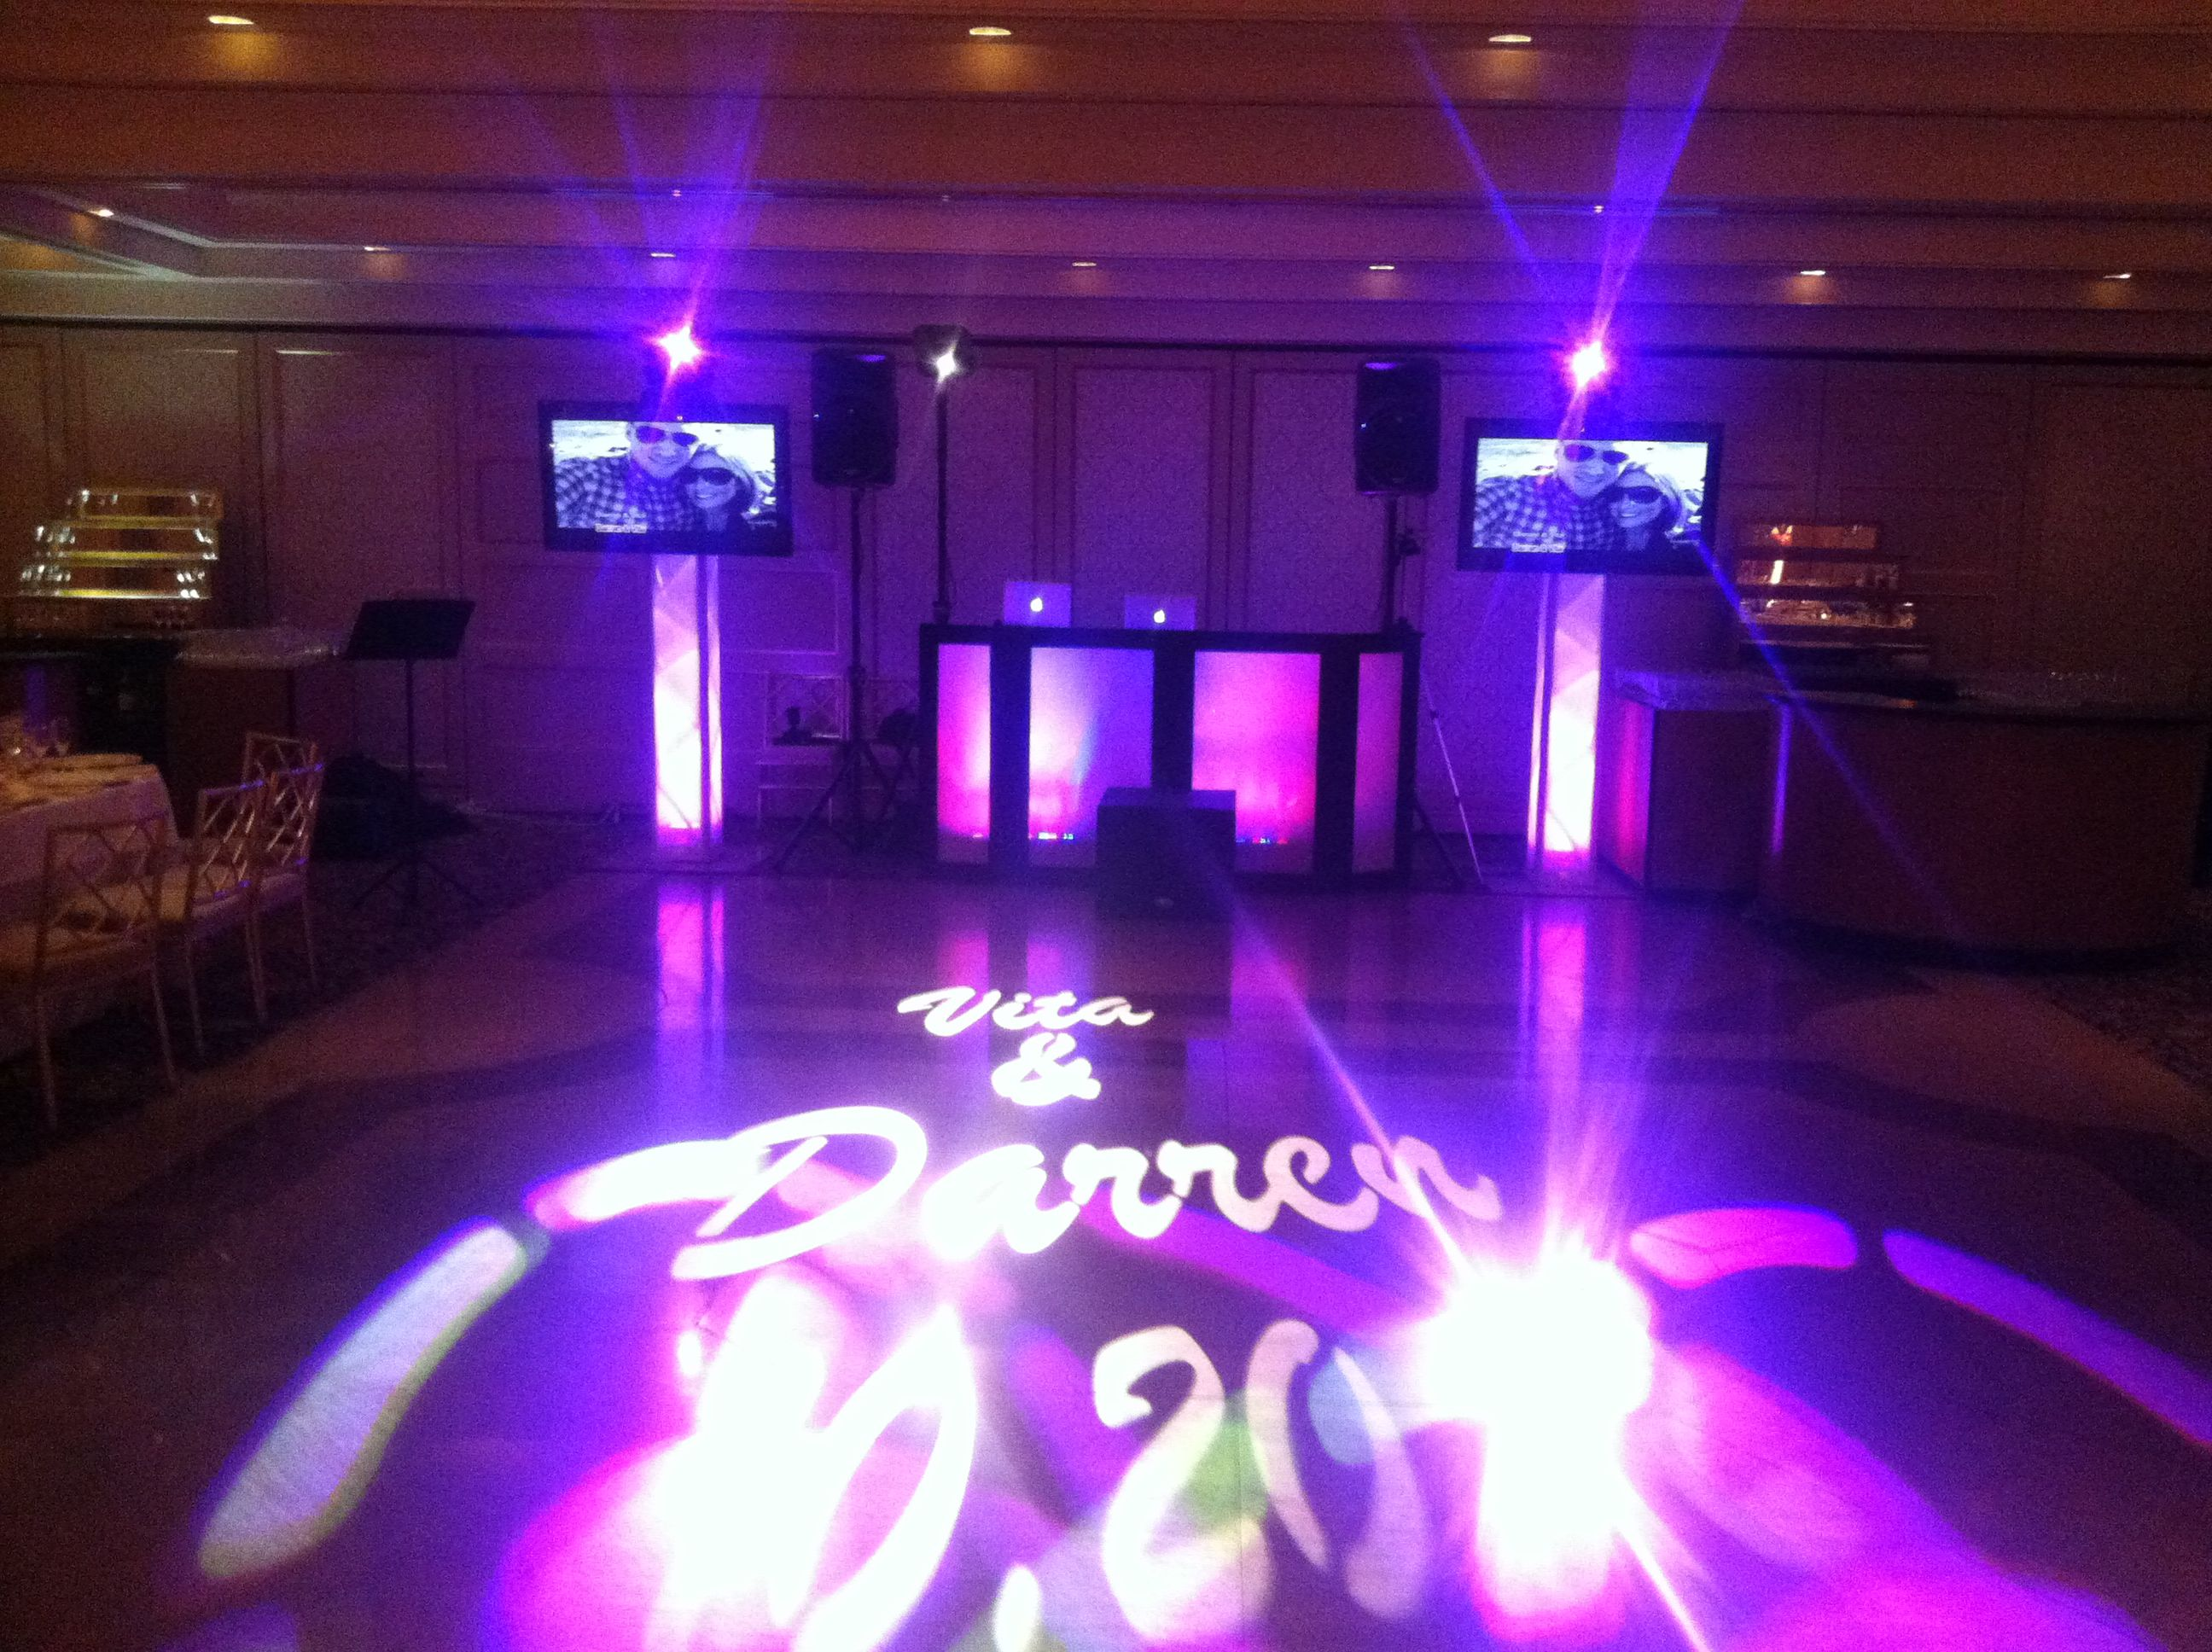 Flat Screen TV's displaying Montage, projected monogram, along with moving heads.